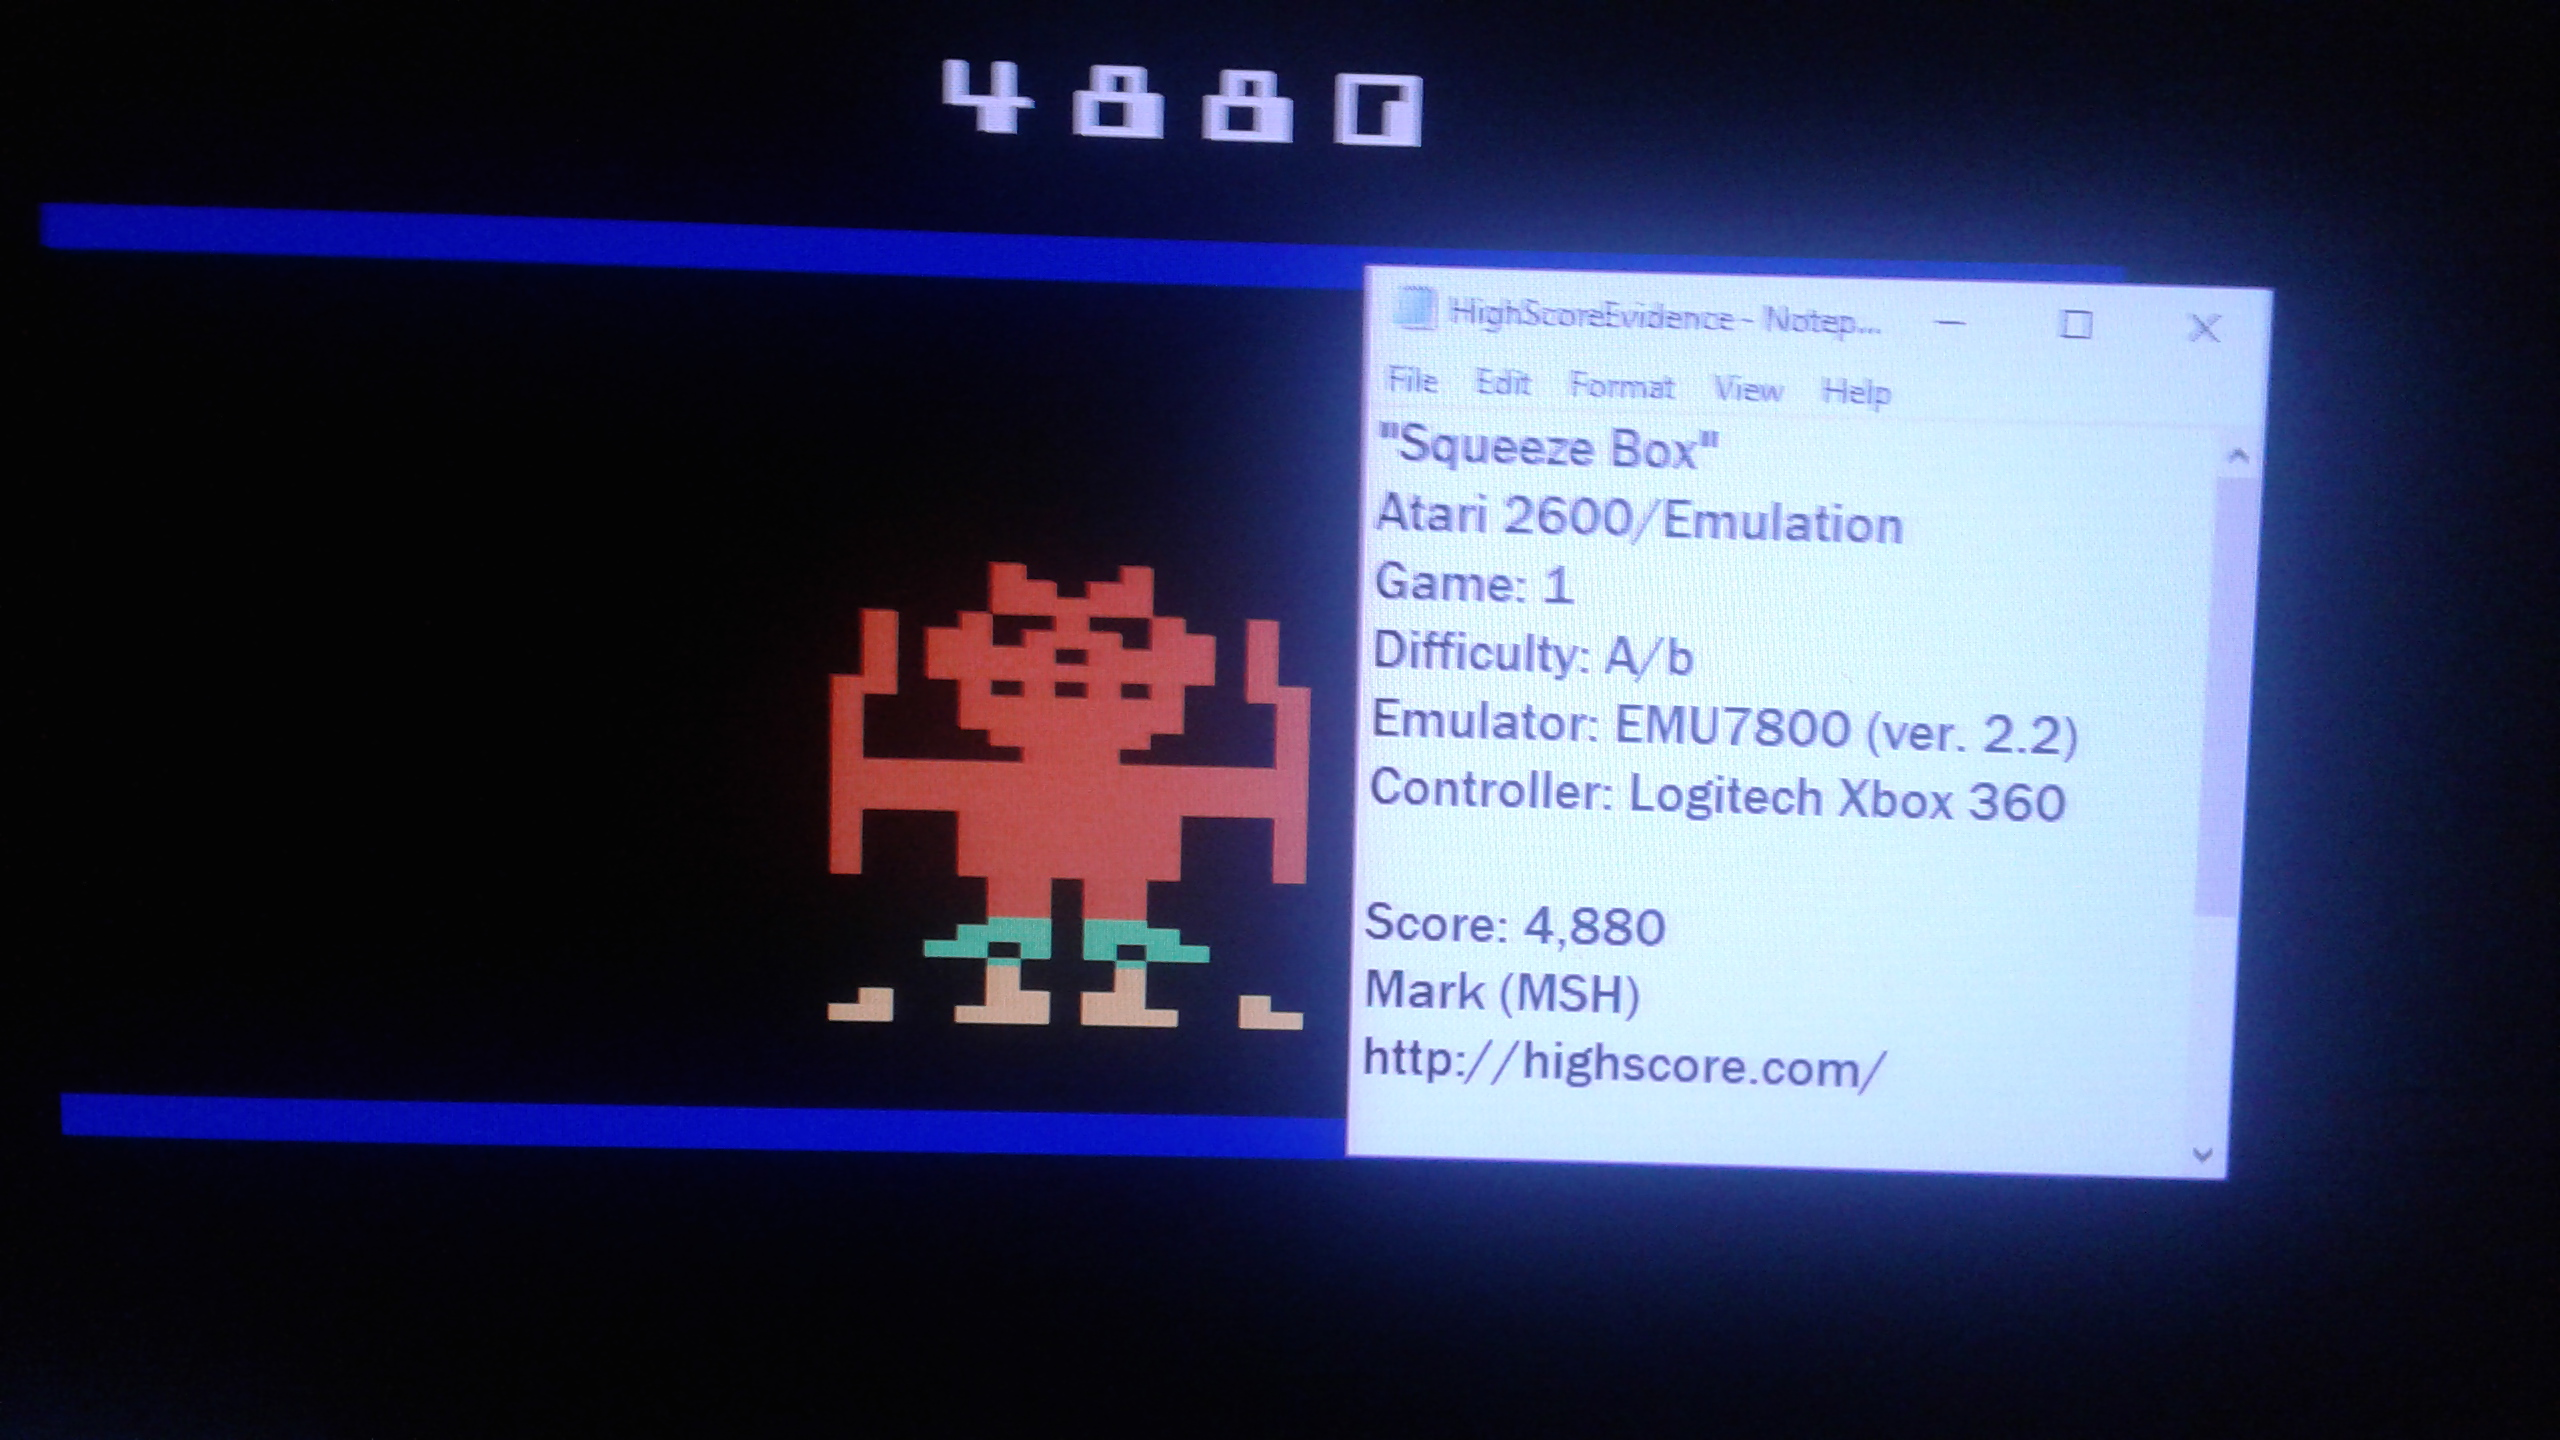 Squeeze Box [Game 1AB] (Atari 2600 Emulated) high score by Mark